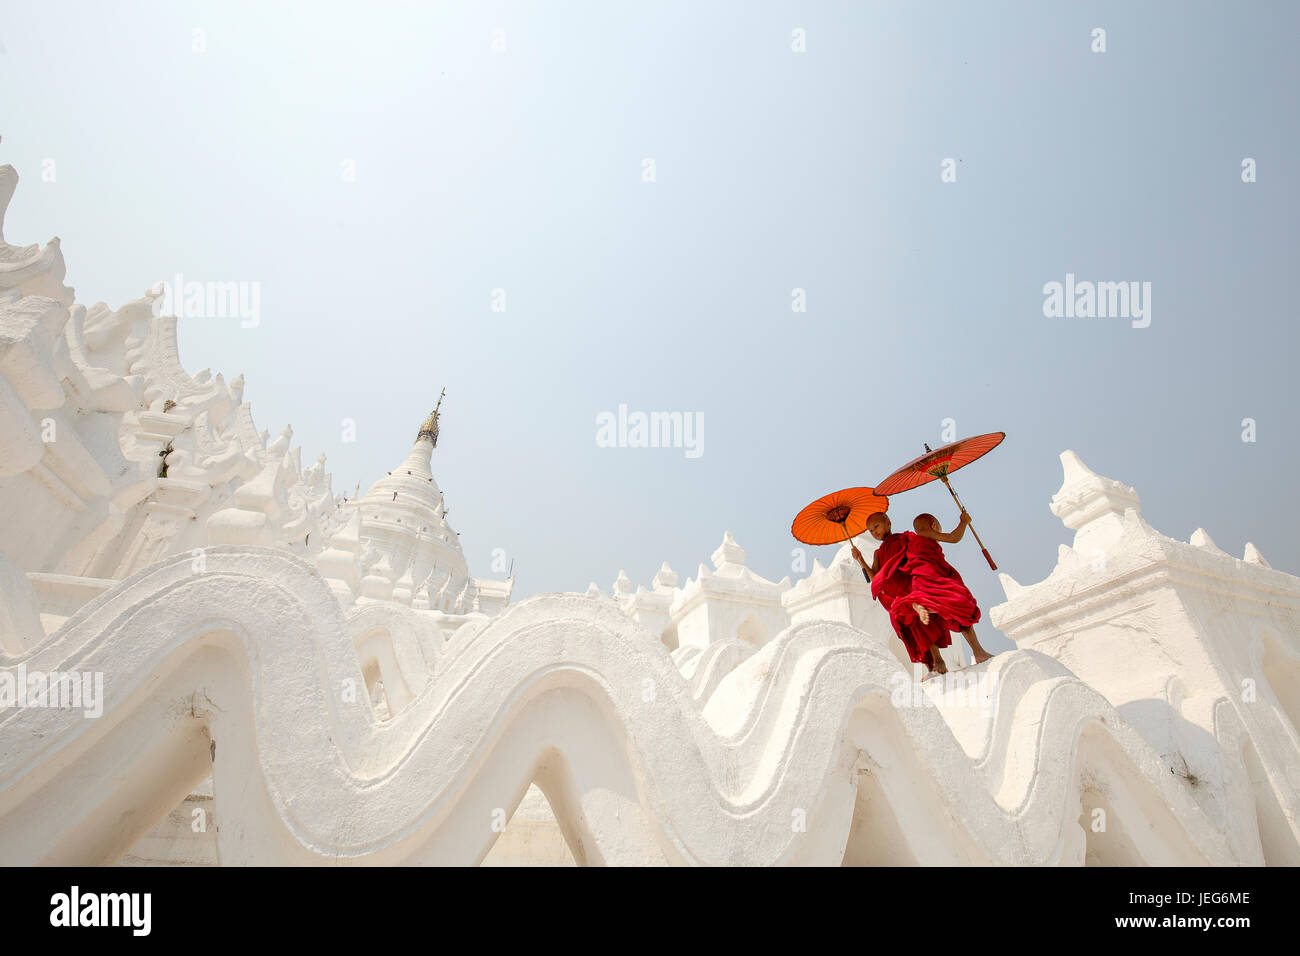 Monks with umbrella in Hsinbyume Pagoda Temple in Mandalay Myanmar Mingon Sagaing region White temple pagoda Myanmar Stock Photo